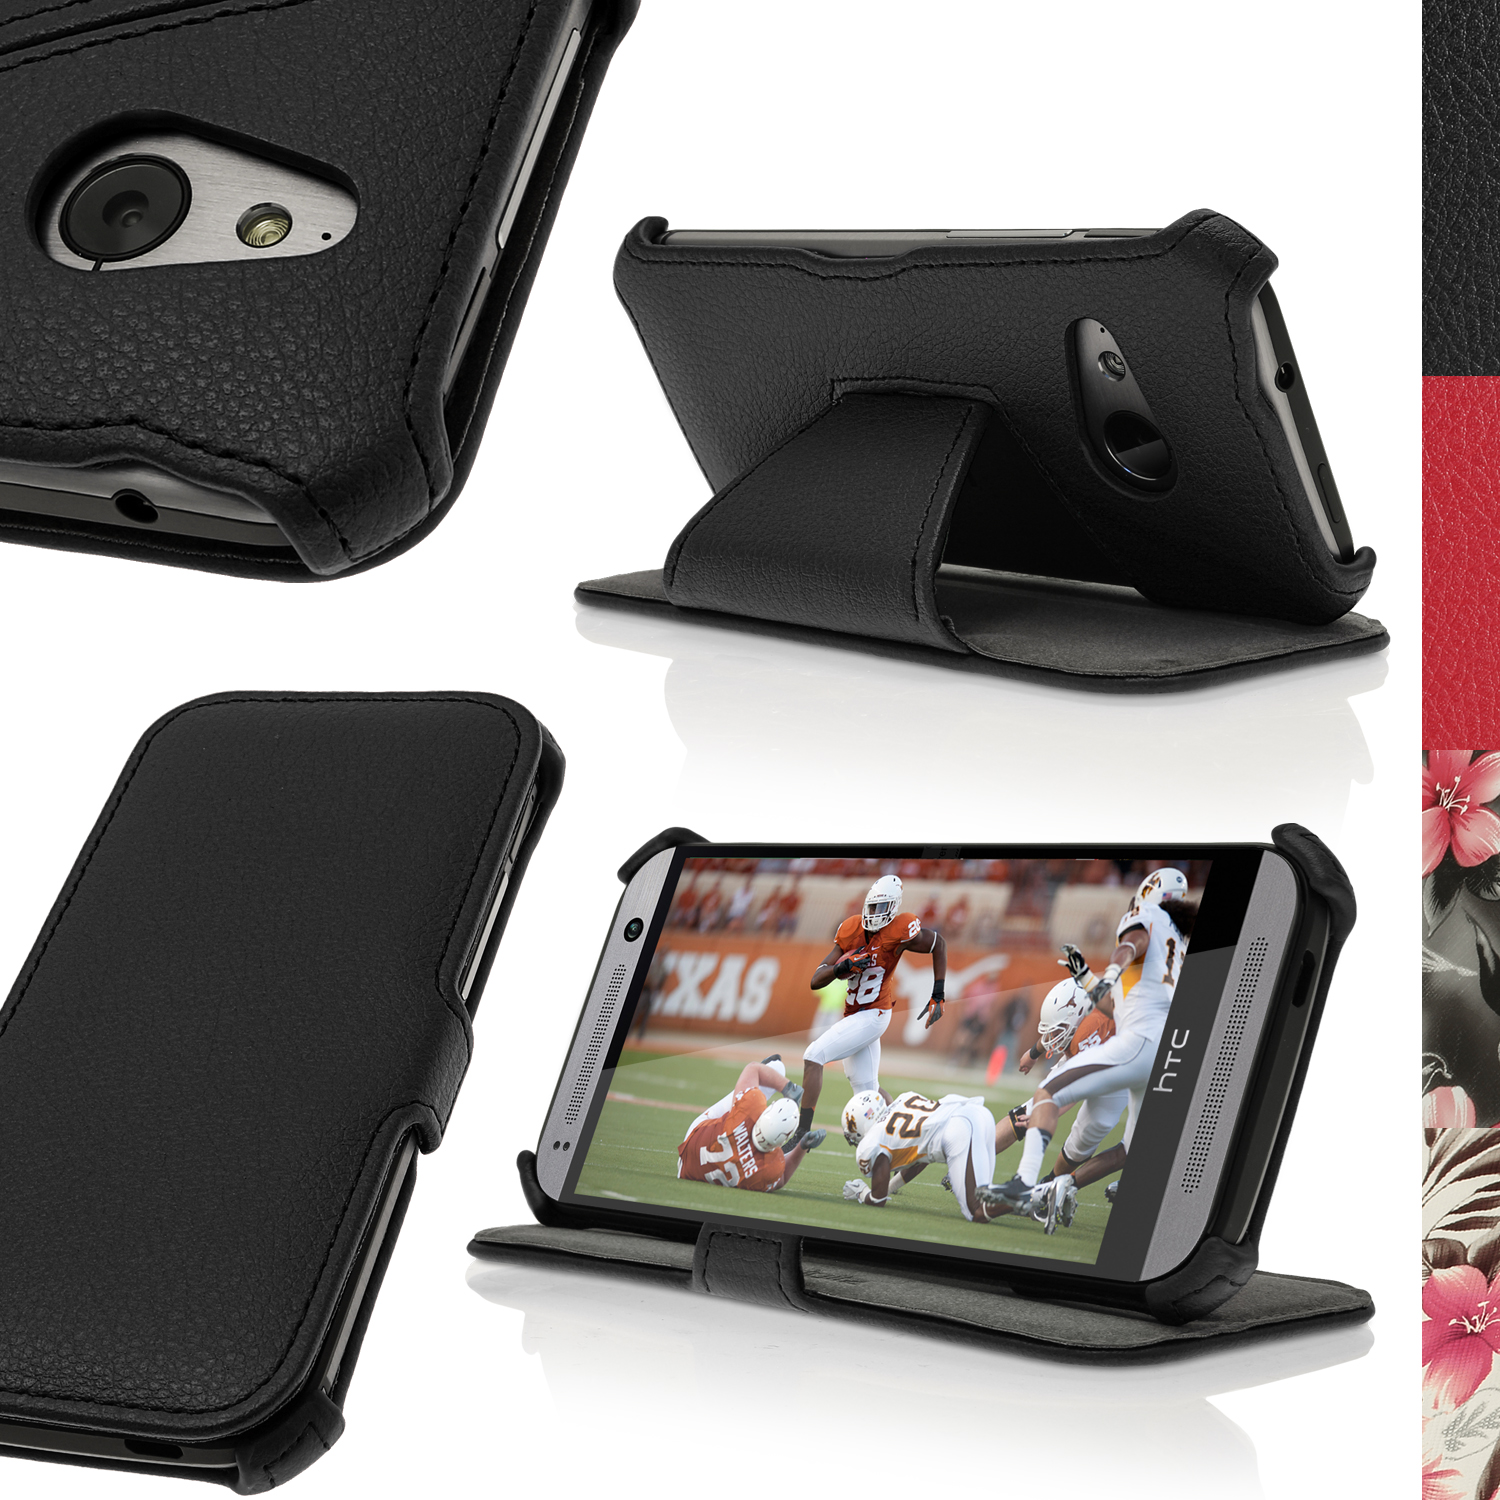 iGadgitz PU Leather Case for HTC One MINI 2 2014 with Viewing Stand + Screen Protector (various colours)